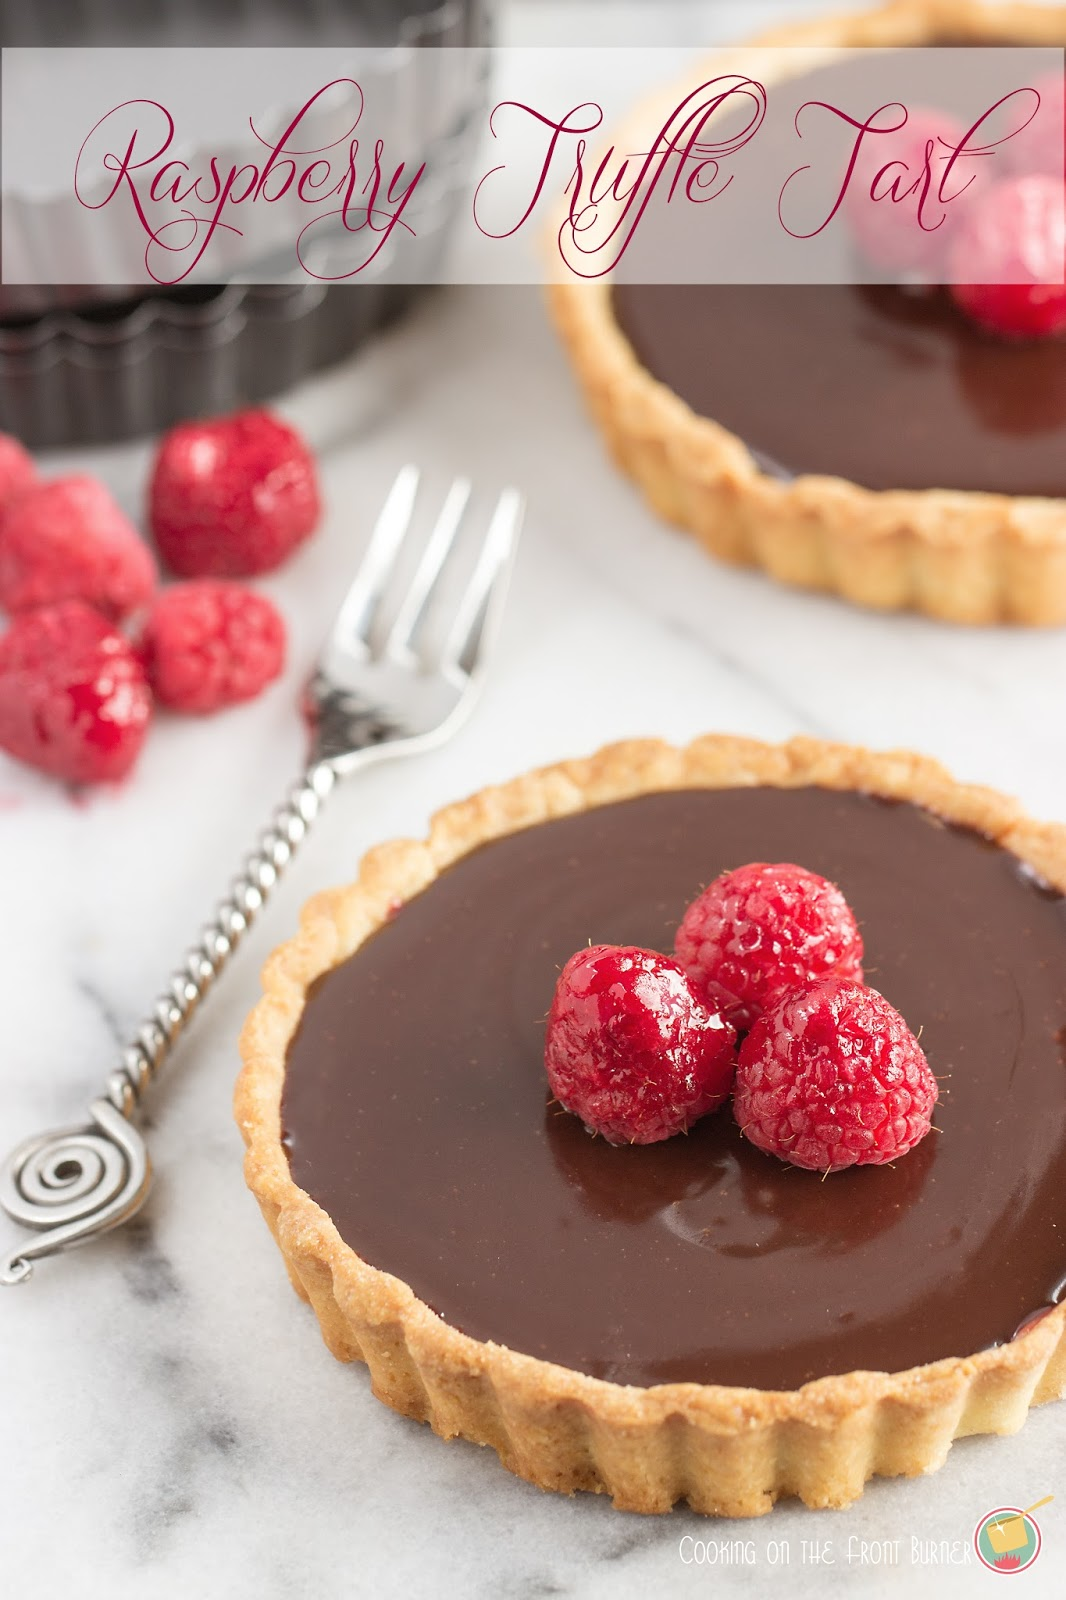 Raspberry Truffle Tart | Cooking on the Front Burner